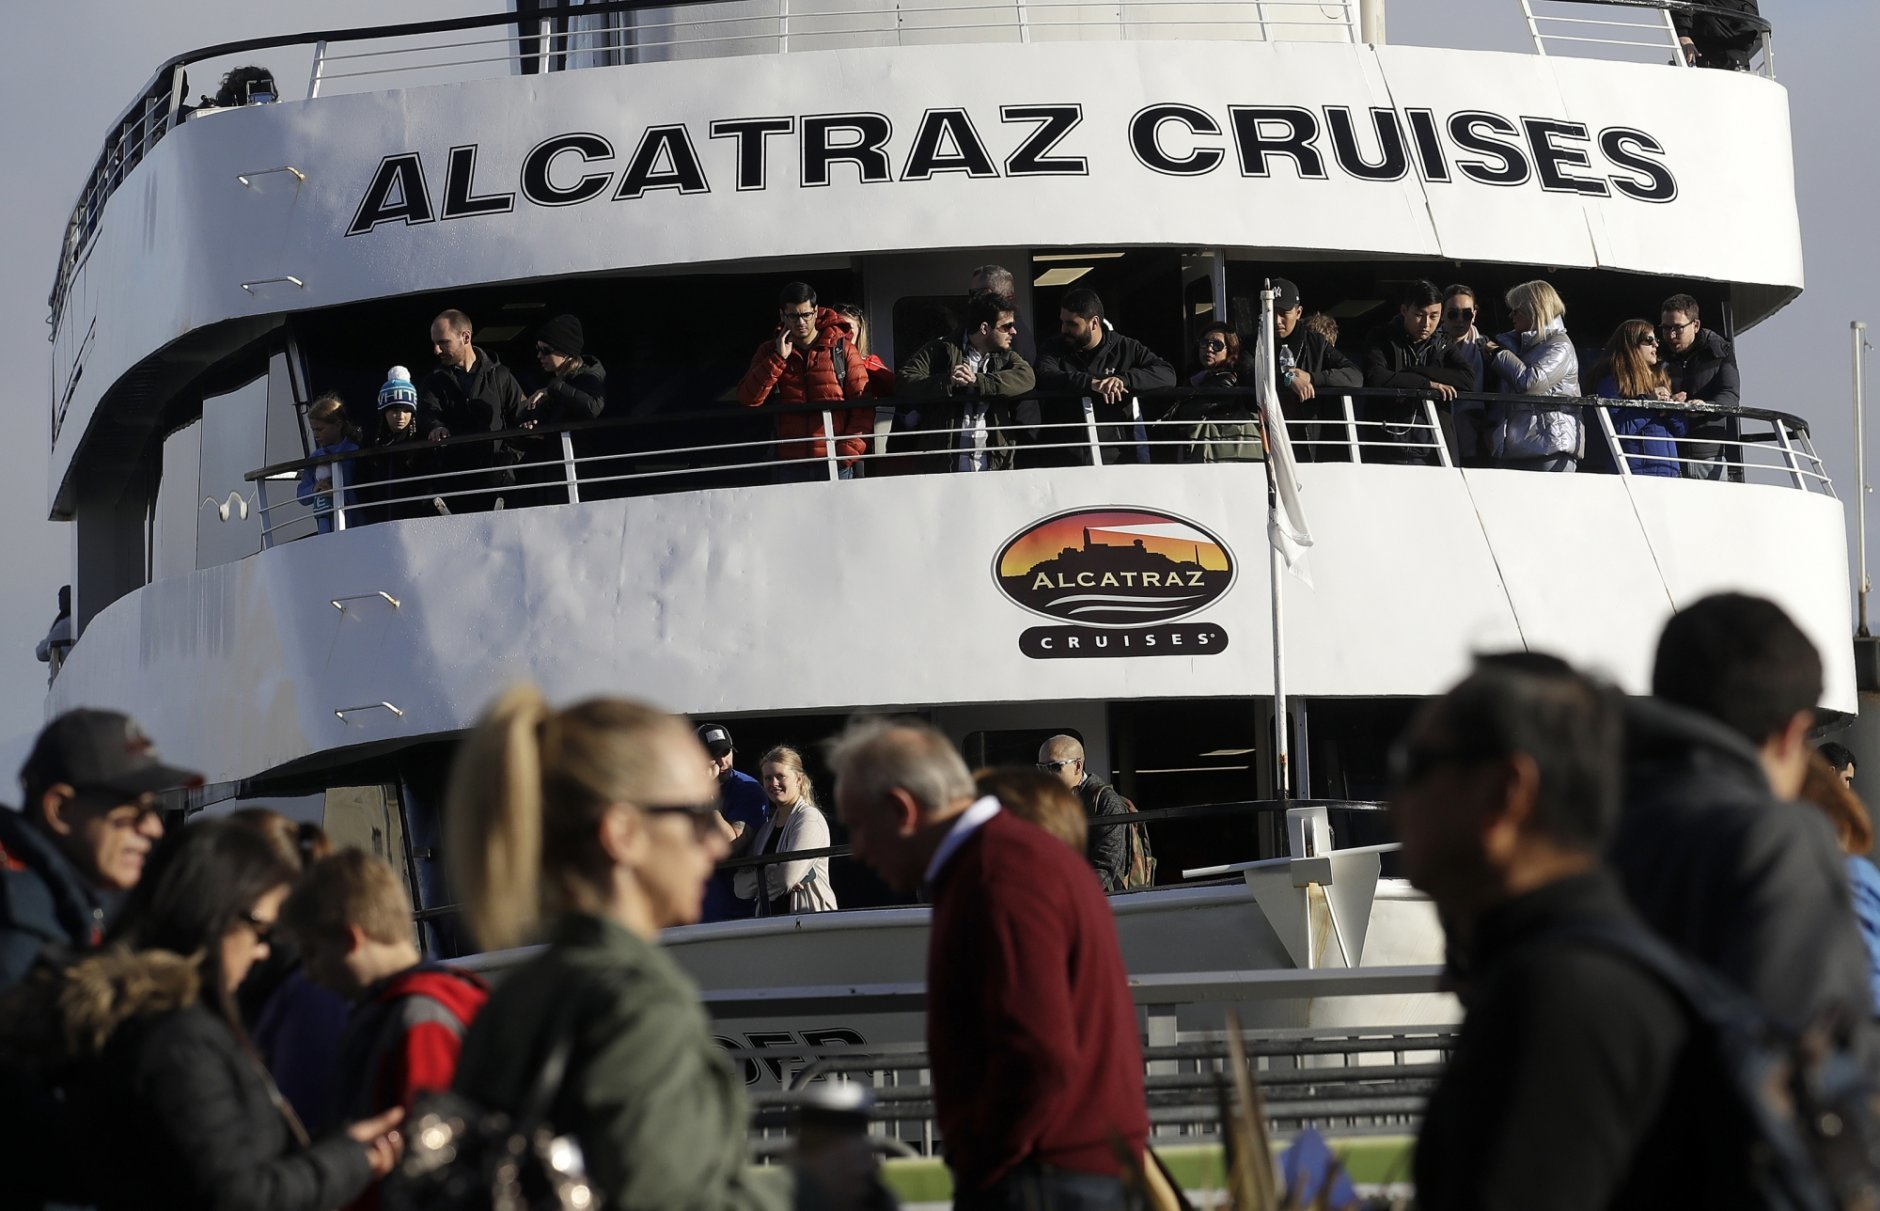 An Alcatraz Cruise ship waits to depart as customers stand in line for ferry service in San Francisco, Saturday, Dec. 22, 2018. A partial federal shutdown has been put in motion because of gridlock in Congress over funding for President Donald Trump's Mexican border wall. The company that provides ferry services to Alcatraz Island kept its daytime tours but canceled its behind-the-scenes and night tours for Saturday. (AP Photo/Jeff Chiu)